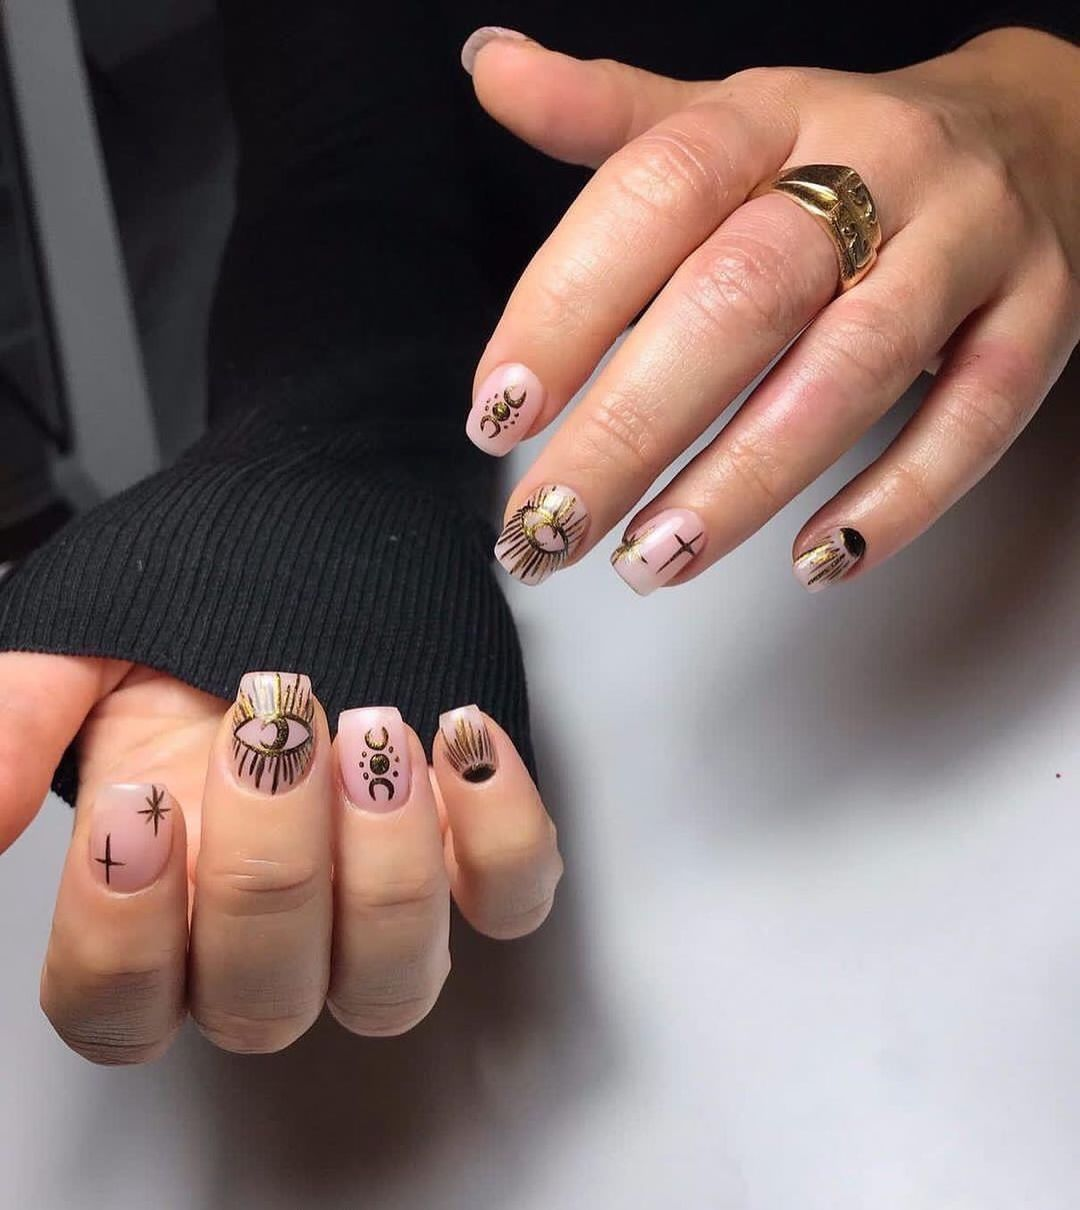 Gold Nails Art By Le diX concept Paris